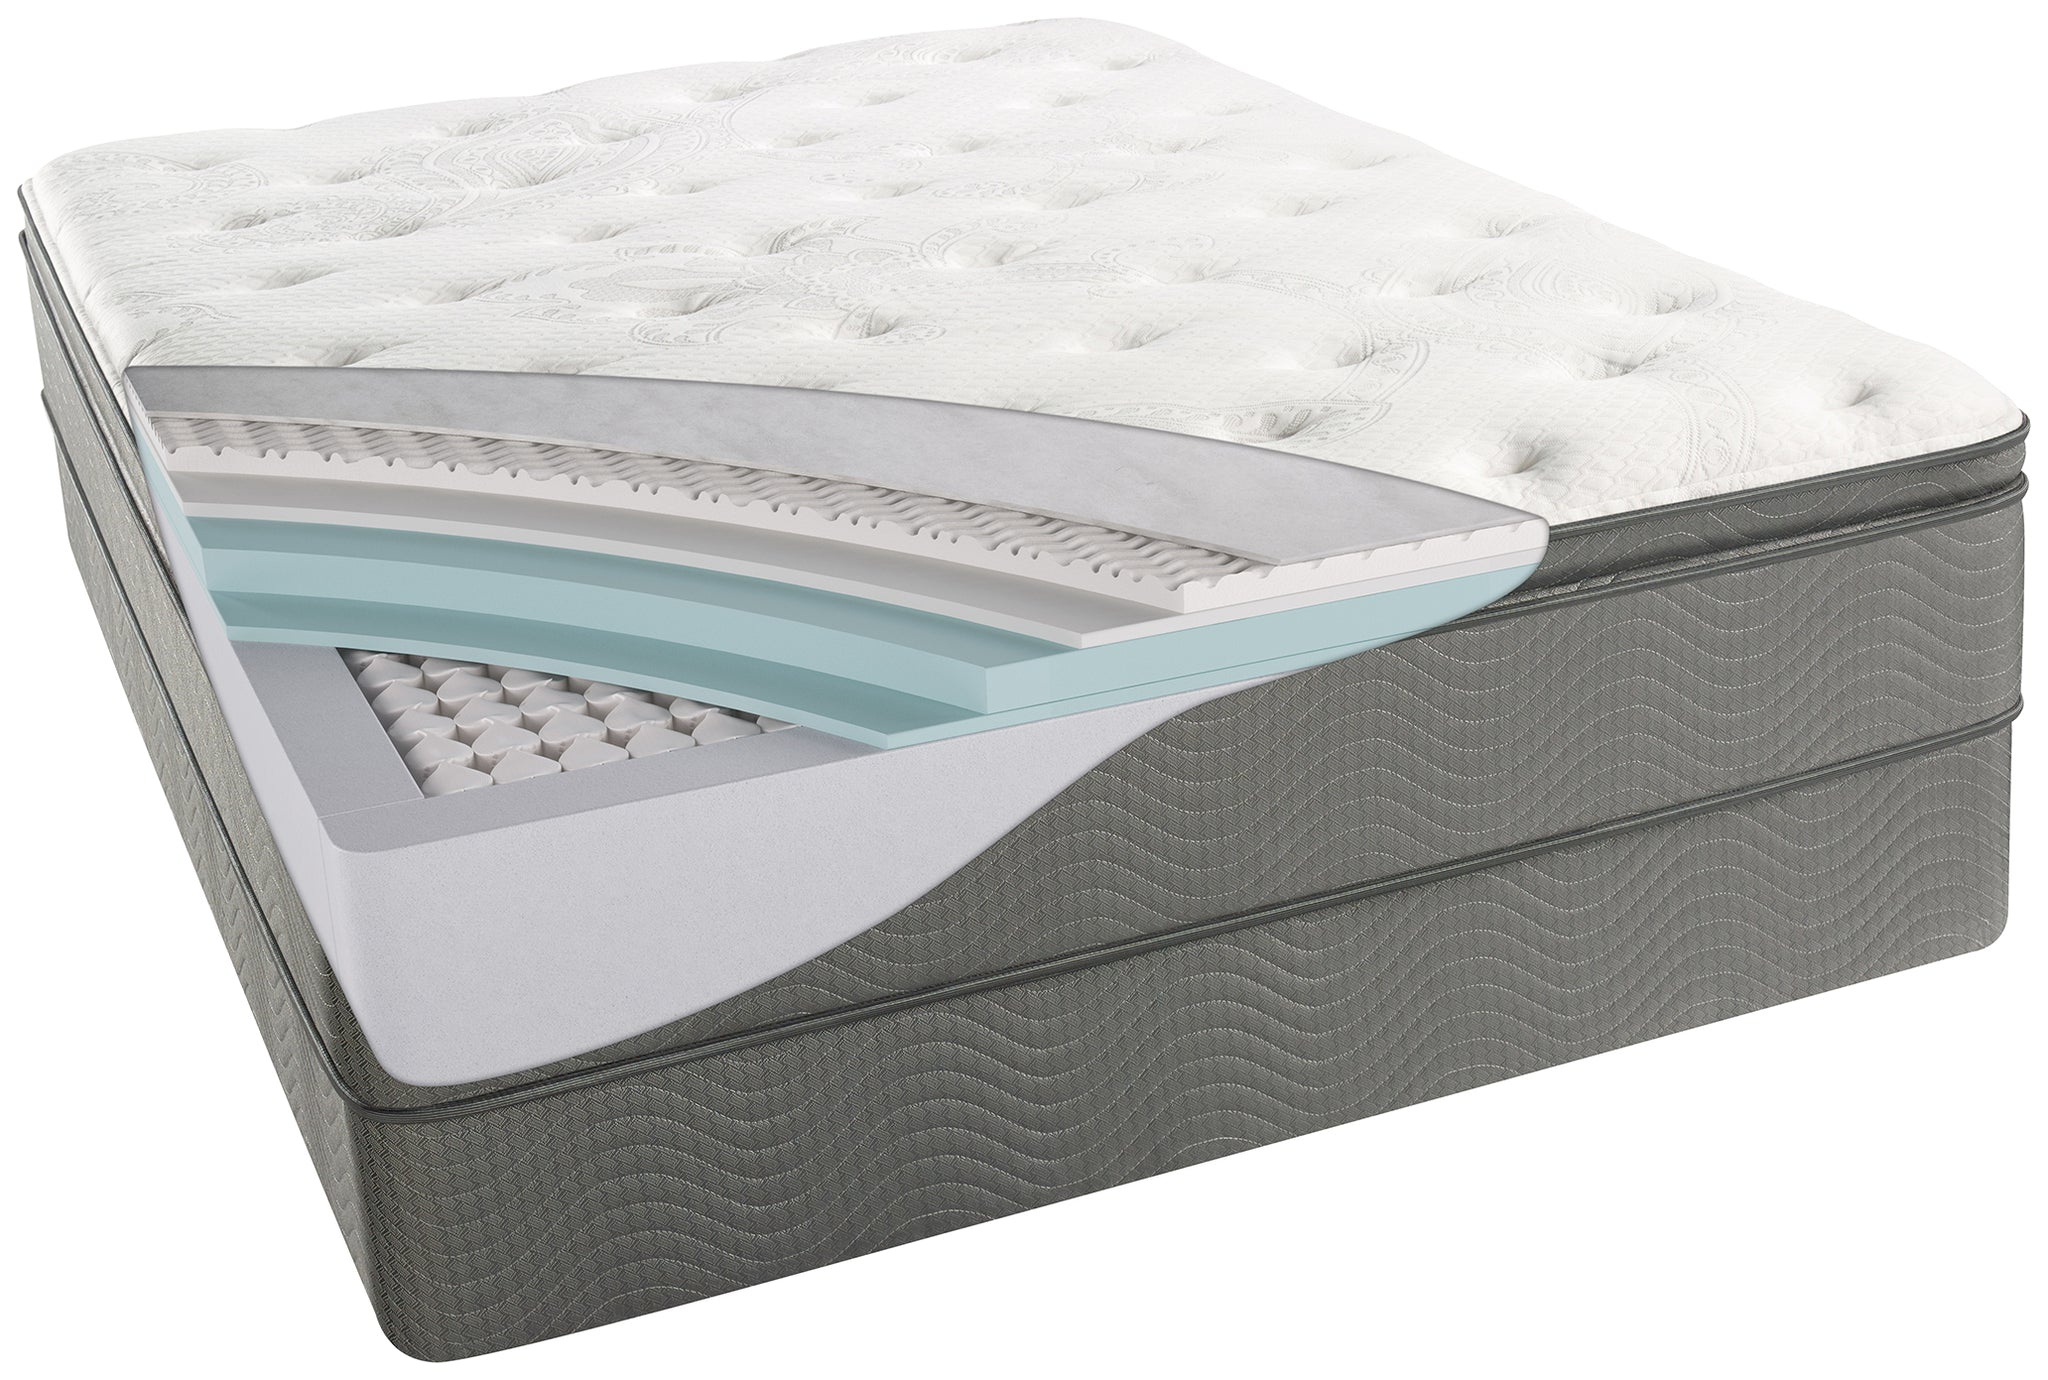 extra topper spring mattress pillow top bonnel